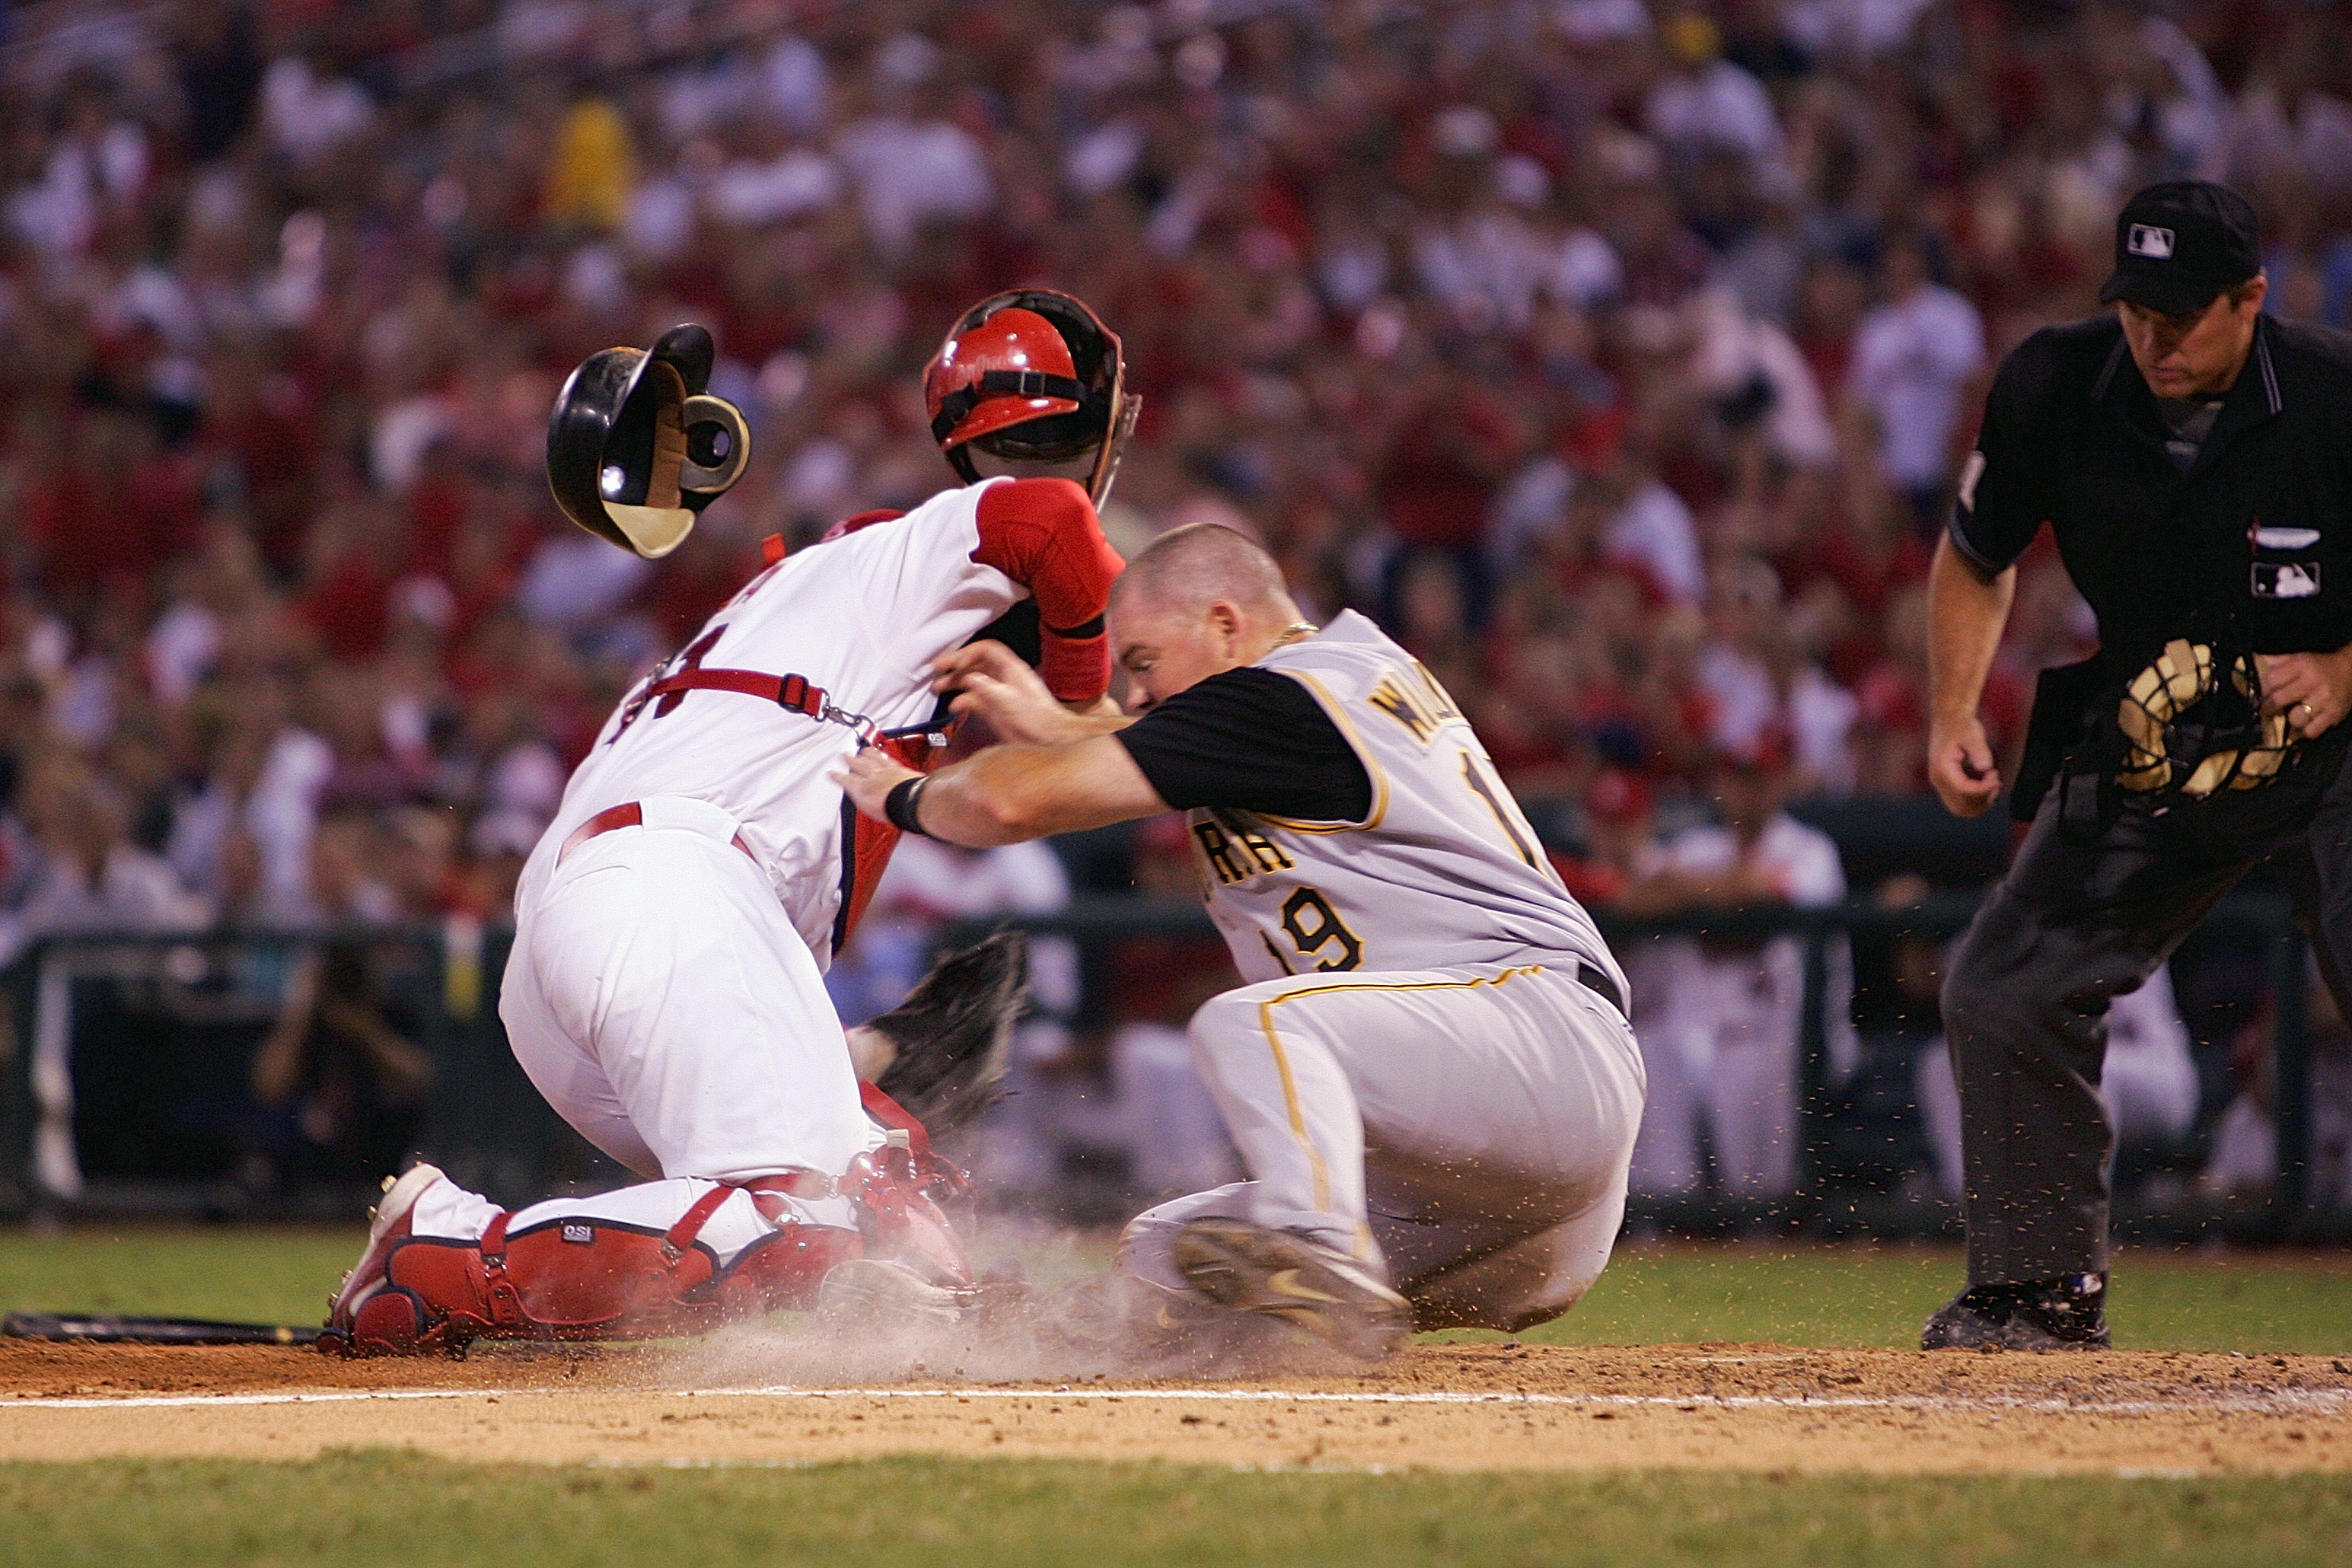 ST. LOUIS - SEPTEMBER 12:  Ty Wigginton #19 of the Pittsburgh Pirates collides with catcher Yadier Molina #41 of the St. Louis Cardinals at home plate during a game at Busch Stadium on September 12, 2005 in St. Louis, Missouri.  The Cardinals won 4-3.  (P